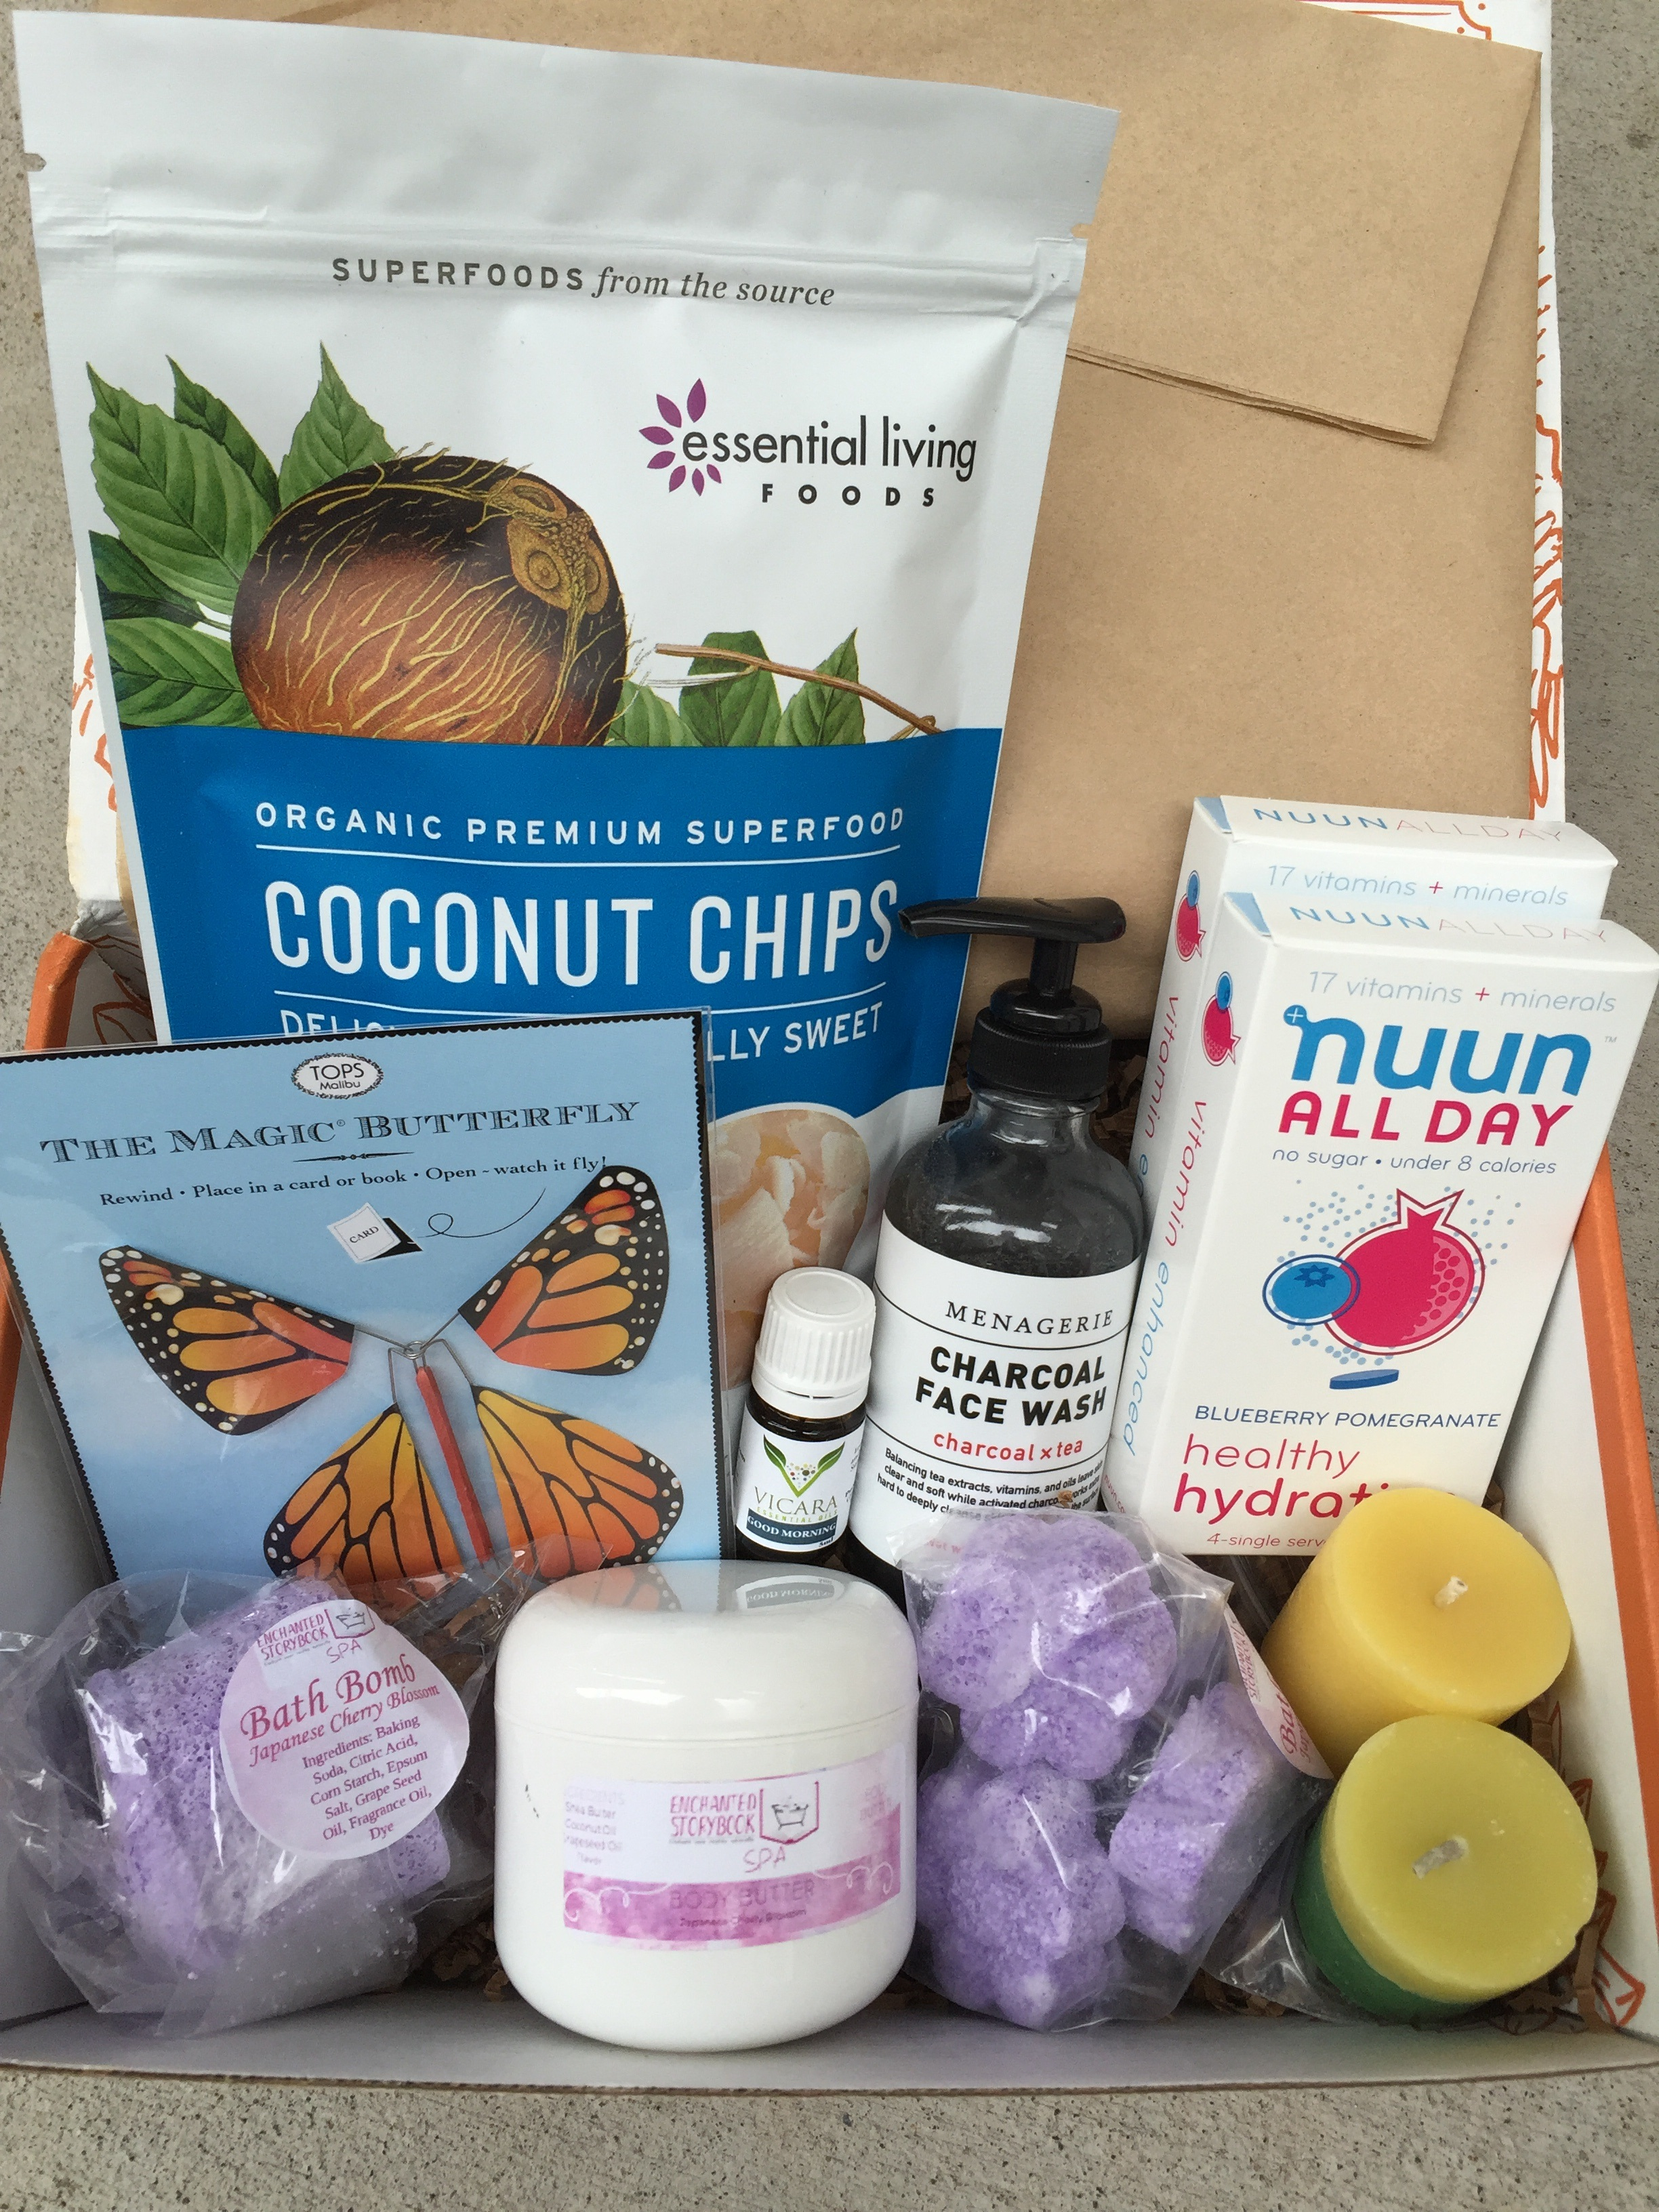 prospurly march 2016 box open with products showing